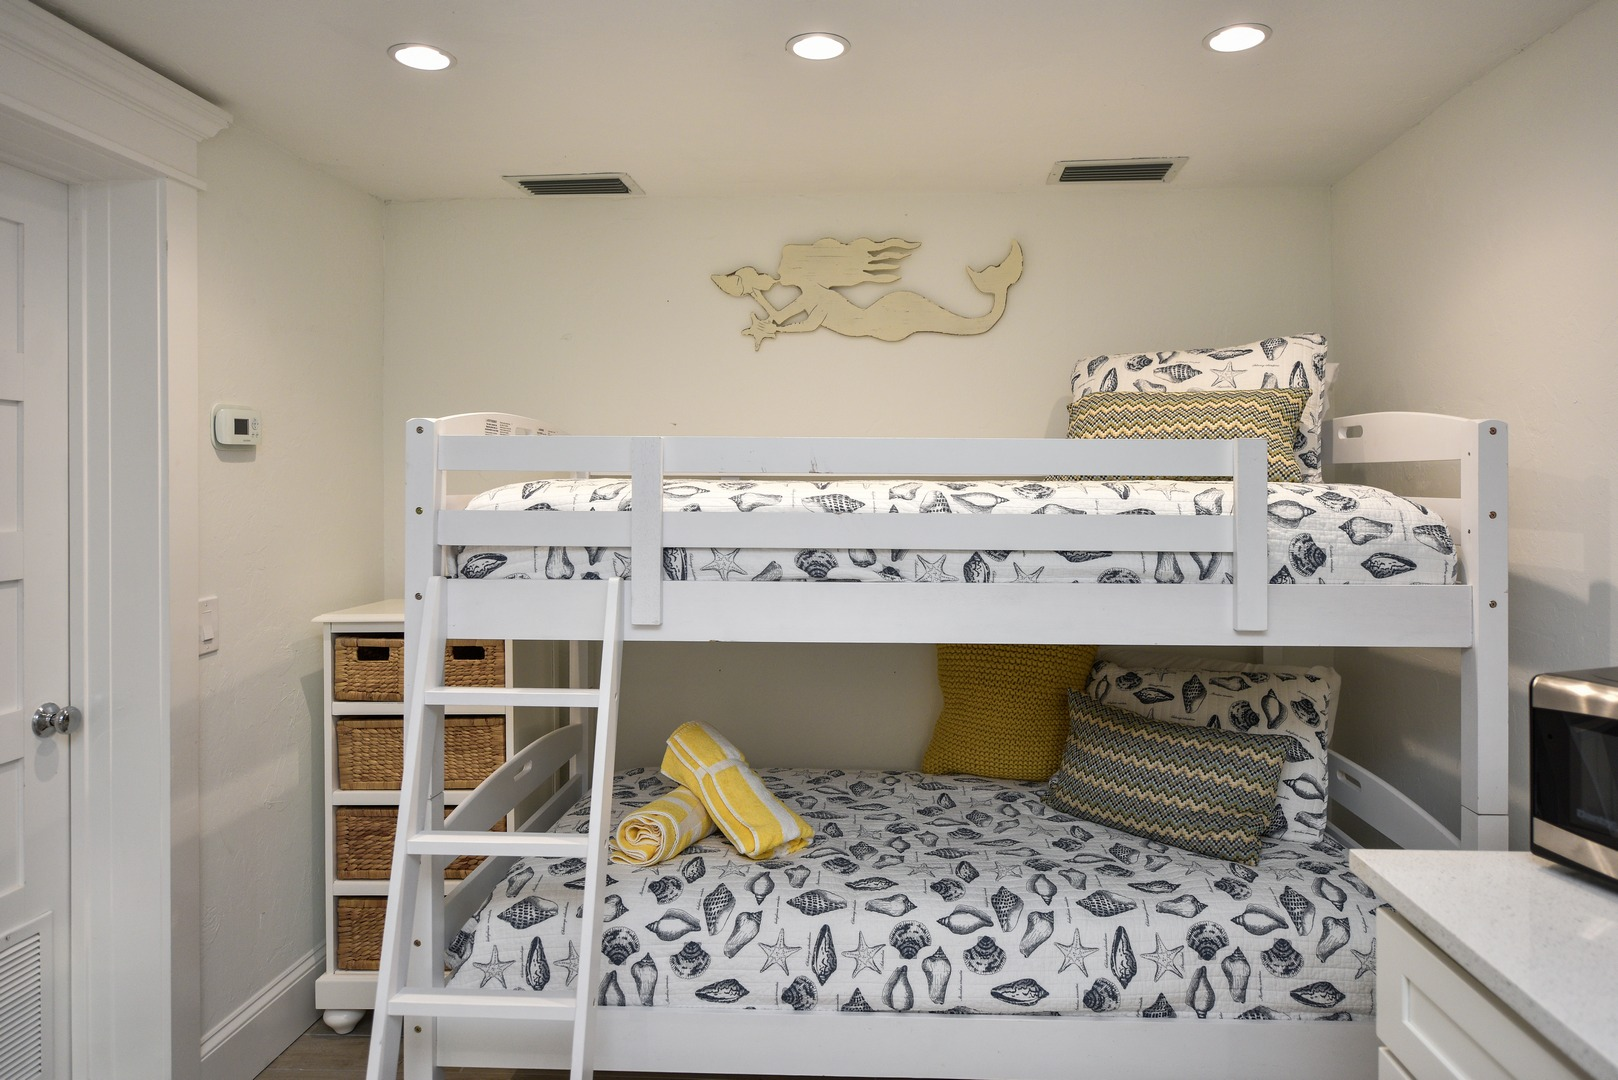 Bunk Beds - Your Kids Will Love Them